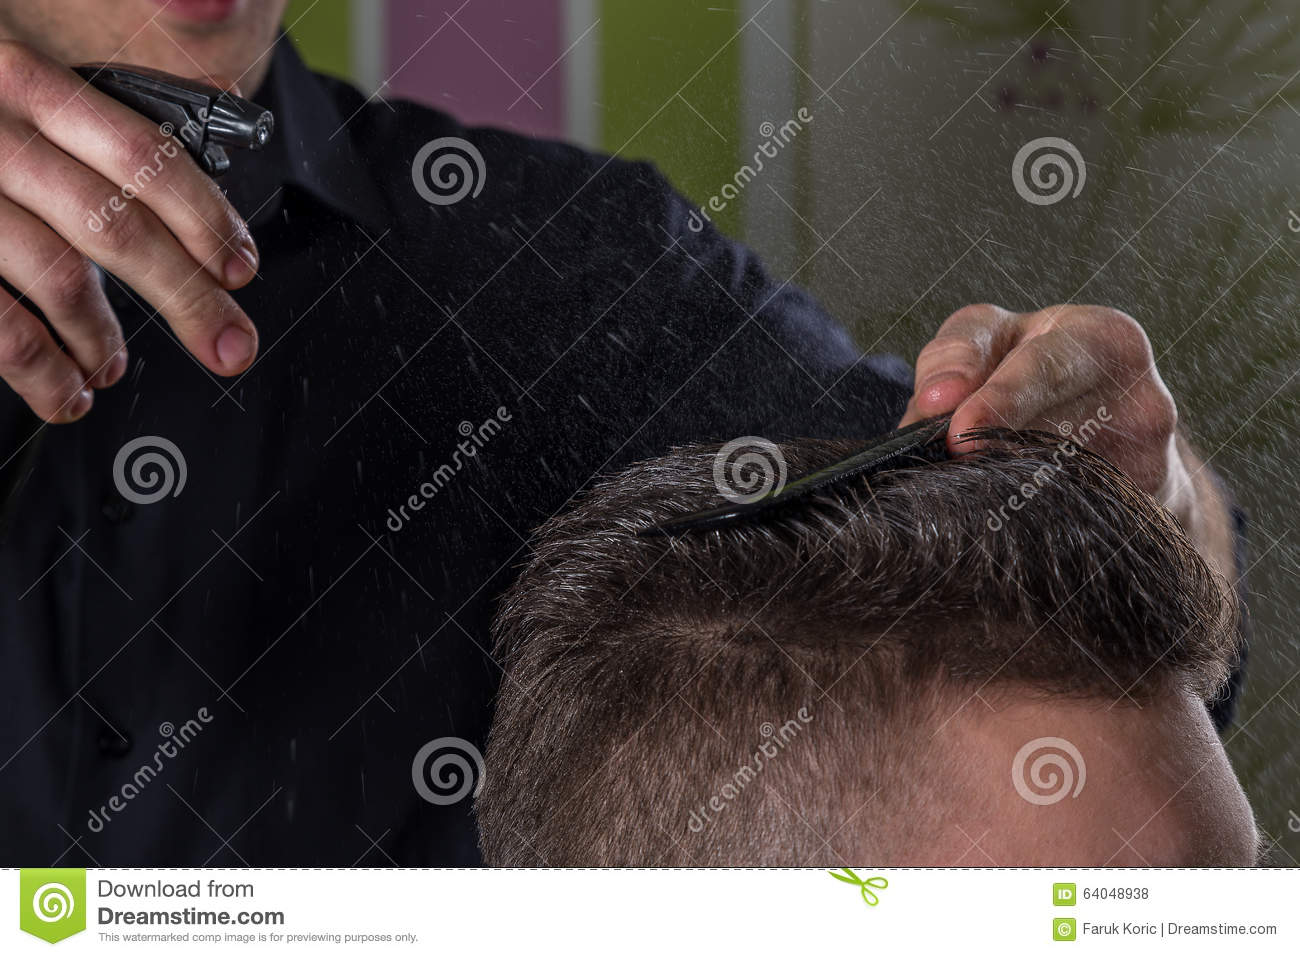 Hairdresser does hair with water and comb of client in professional hairdressing salon